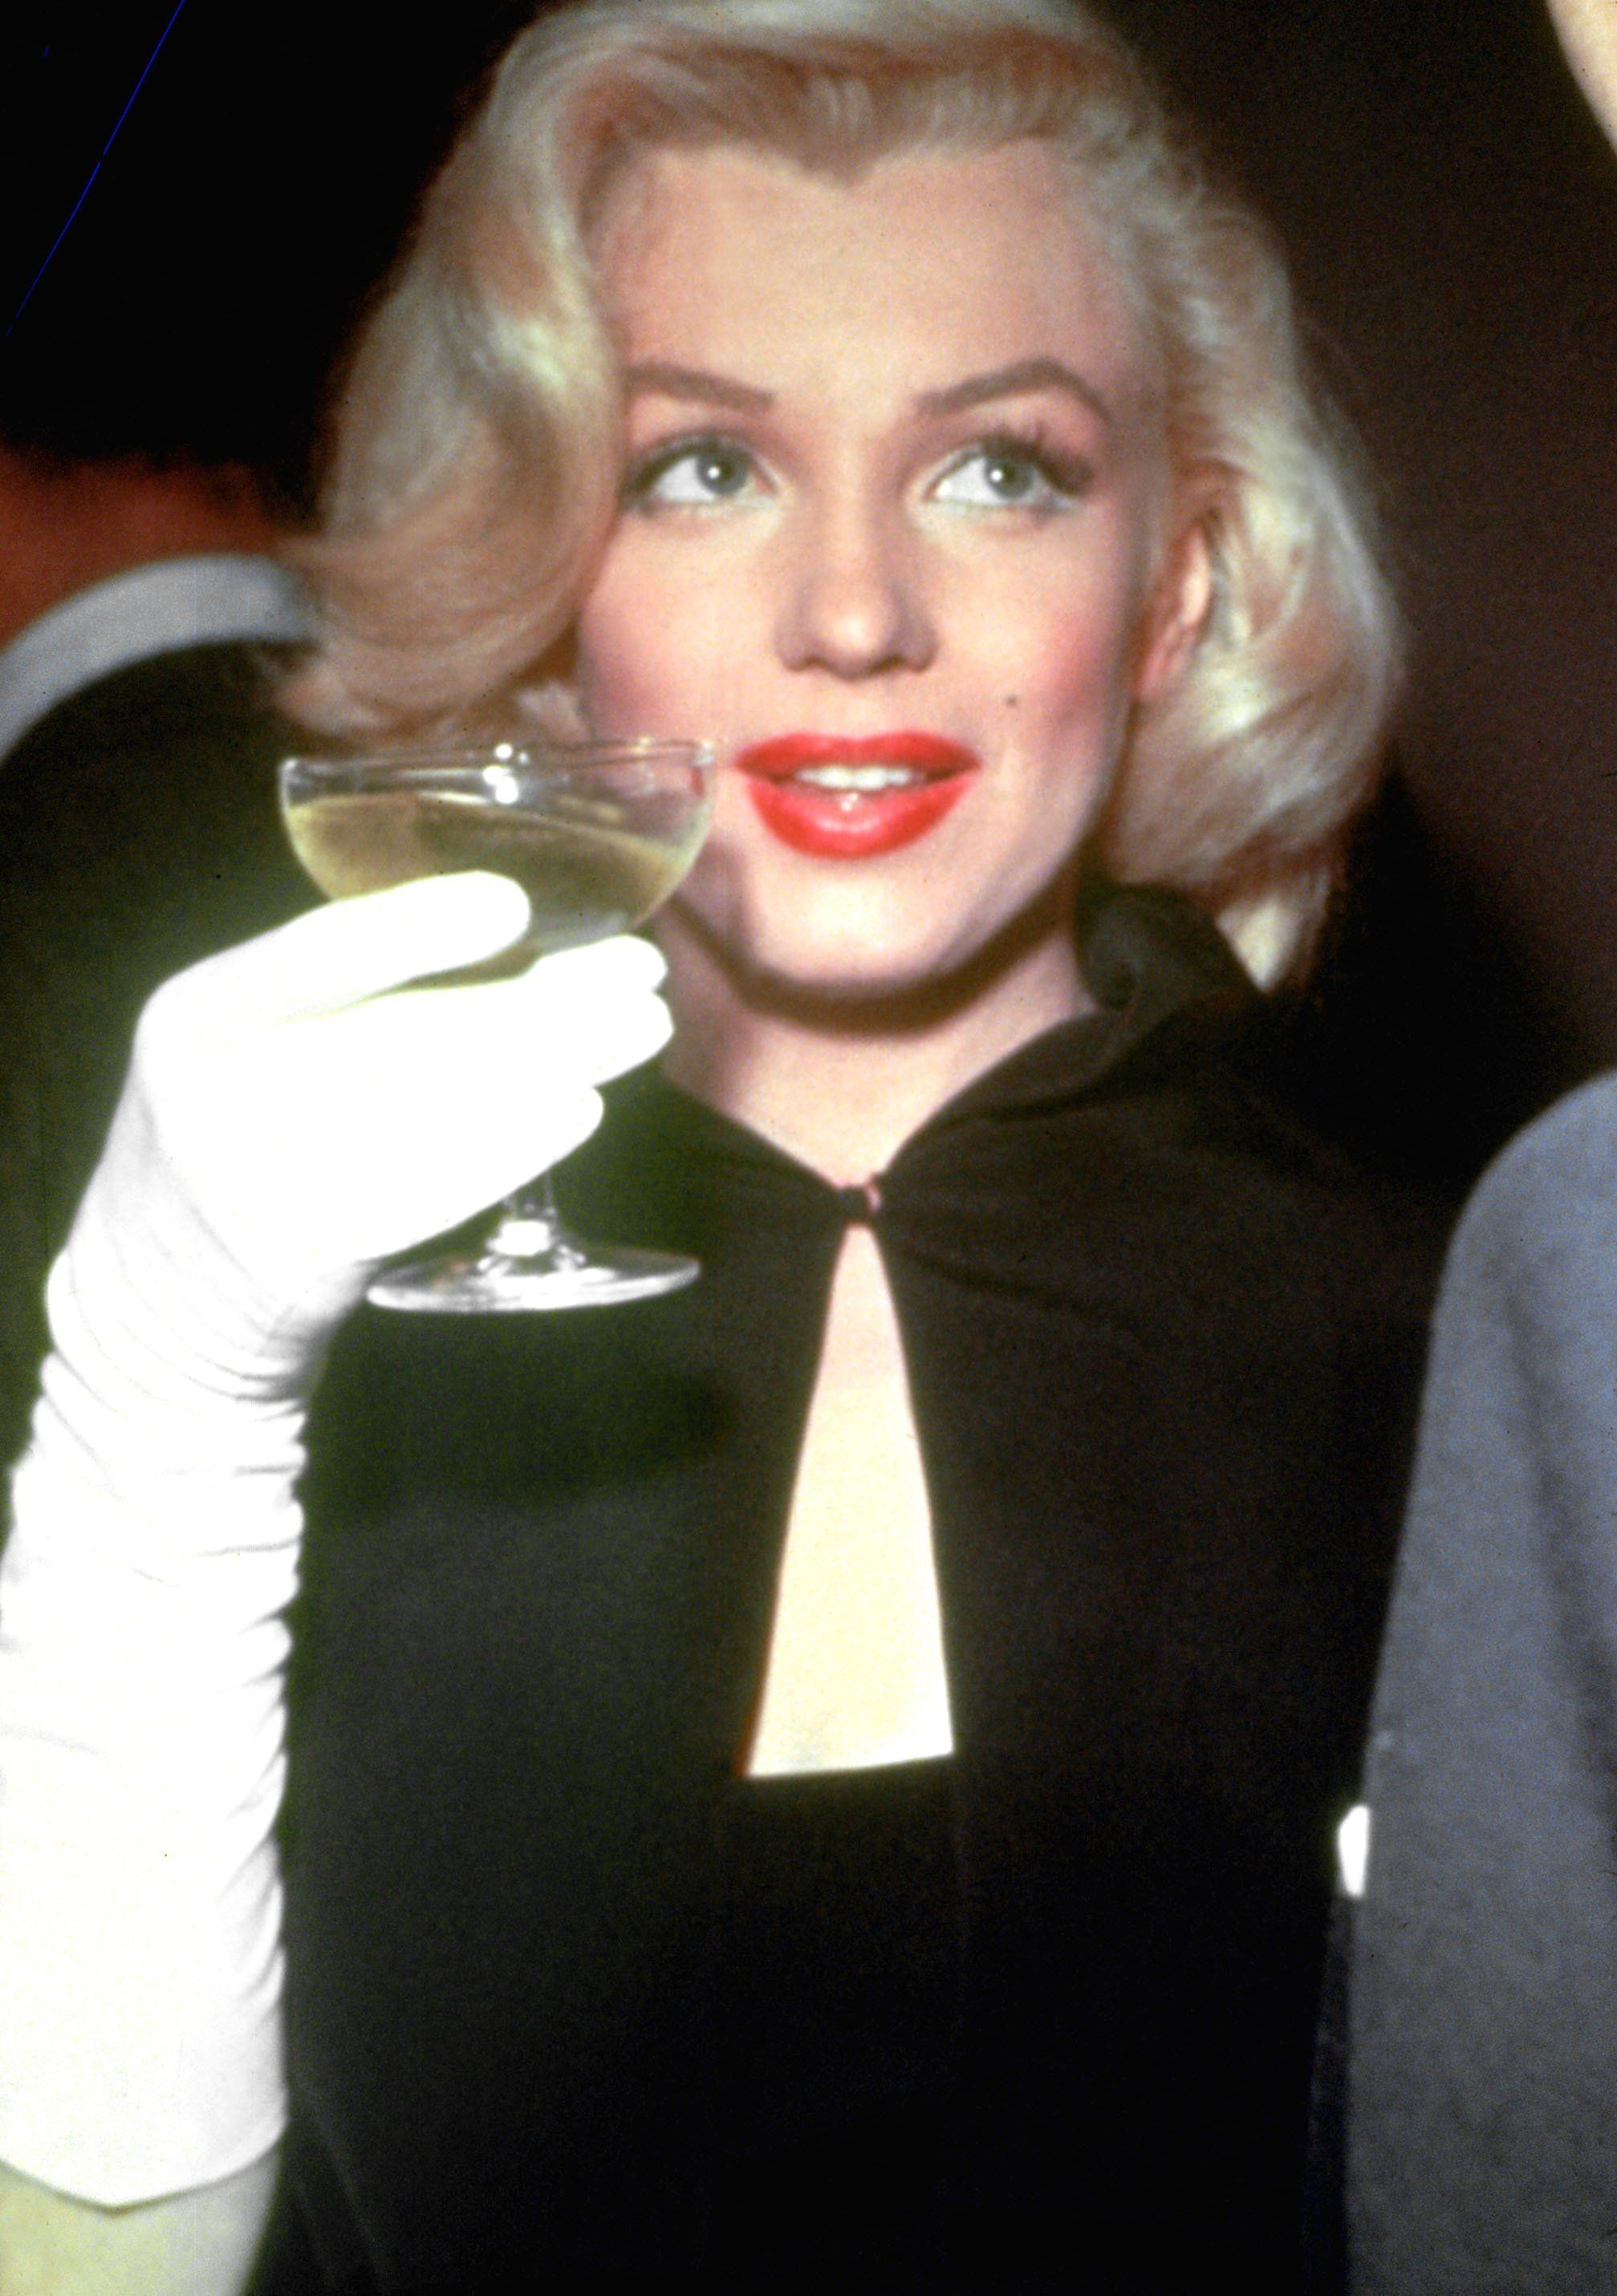 Marilyn Monroe in the 1950's. EDITORIAL USAGE ONLY. NO COVER USAGE.  (Photo by API/Gamma-Rapho via Getty Images)